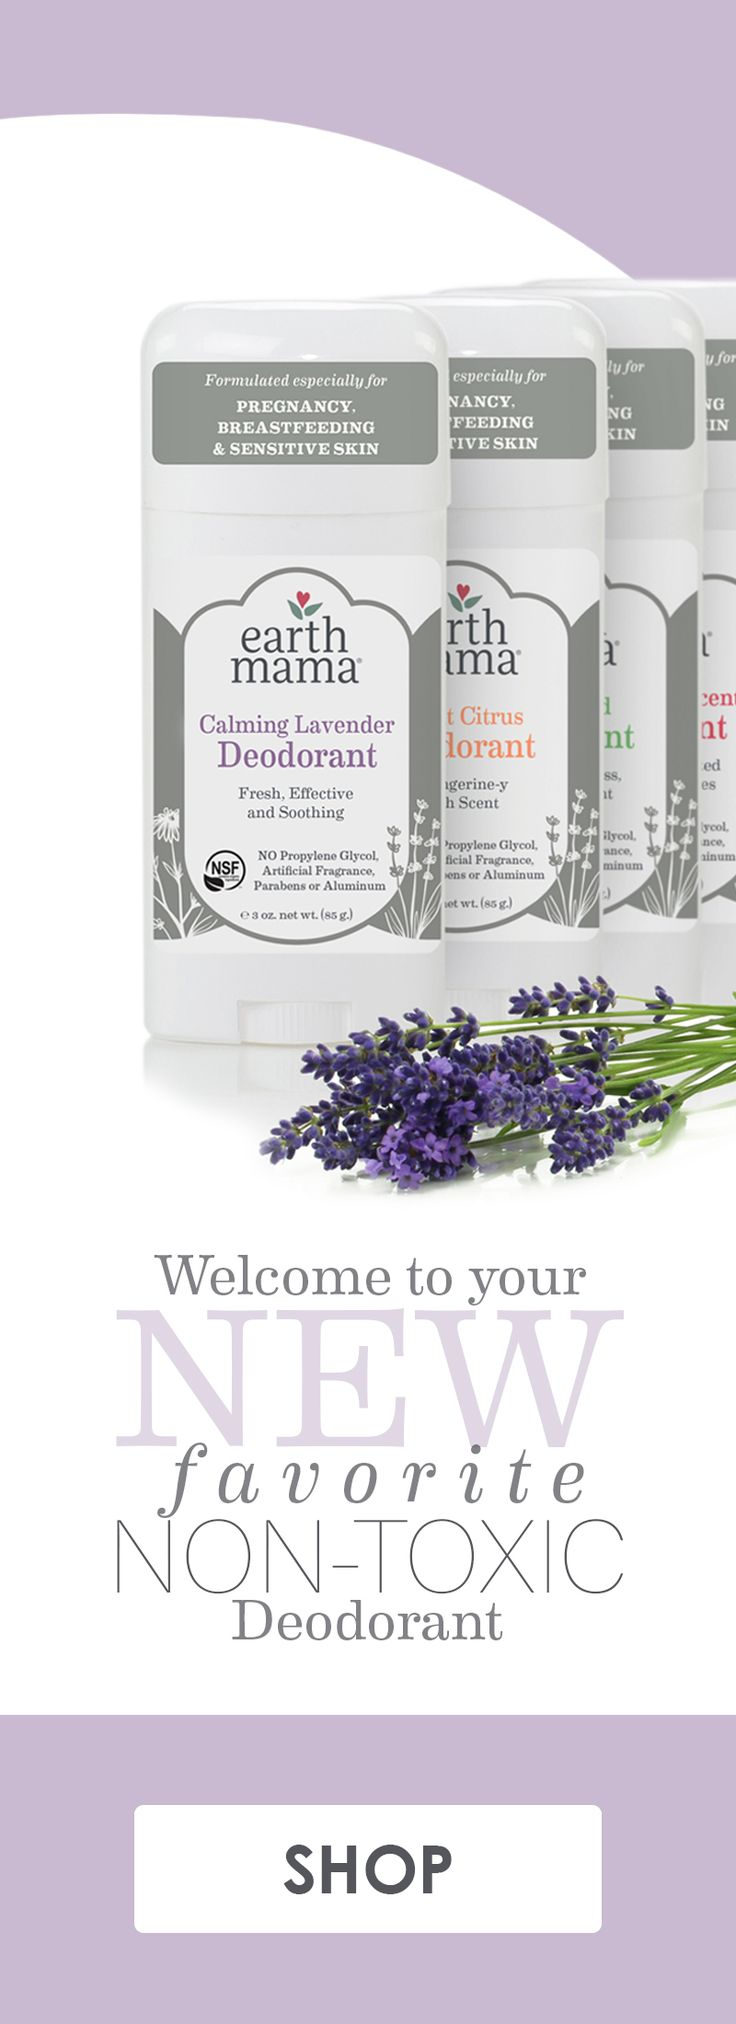 Welcome Calming Lavender, Bright Citrus, GingerAid, & Natural Non-Scents Deodorant. Formulated especially for pregnancy, breastfeeding, sensitive skin and YOU! With NO propylene glycol, artificial fragrance, parabens or aluminum, because what goes on goes in. Dermatologist tested and clinically tested for irritation. And you know what else? They're organic! #allnaturaldeodorant, #naturaldeodorant, #nontoxicskincare #organicdeodorant